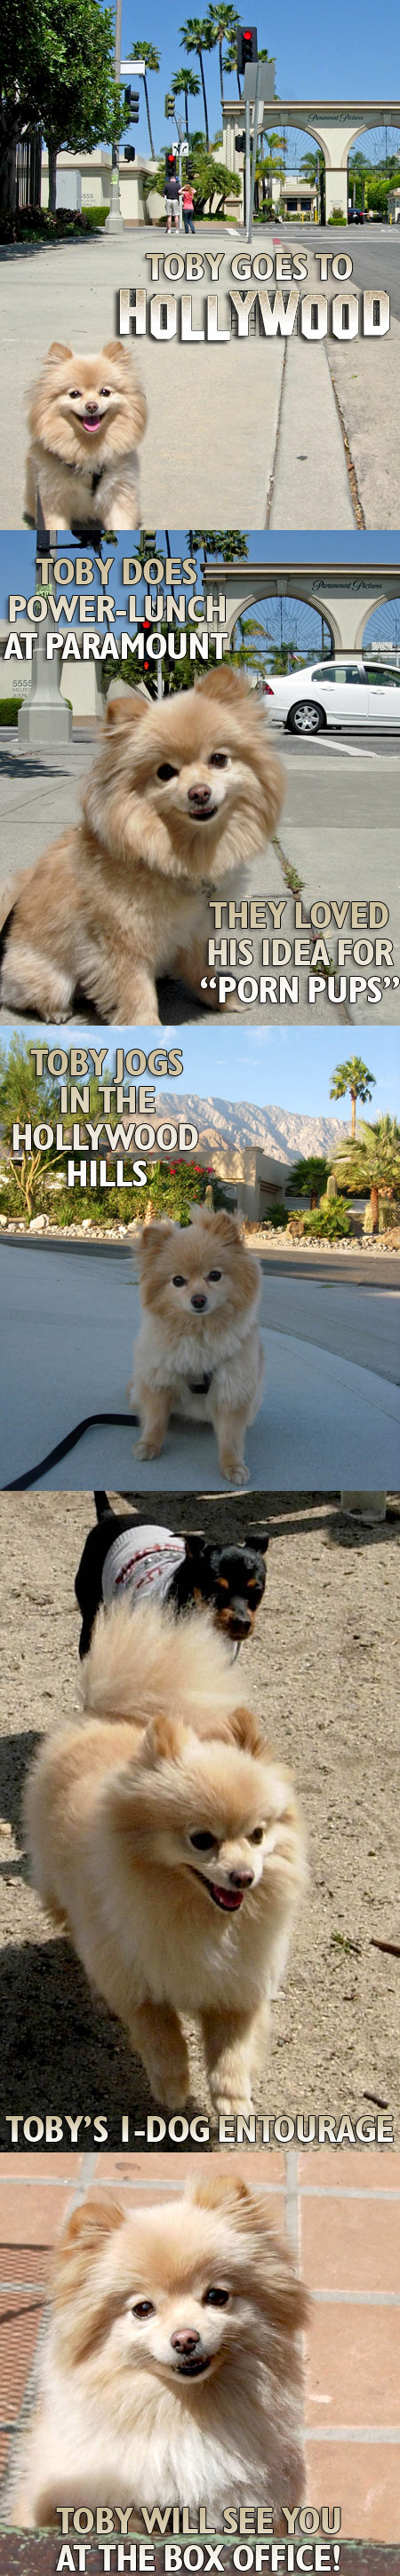 Toby Goes To Hollywood!